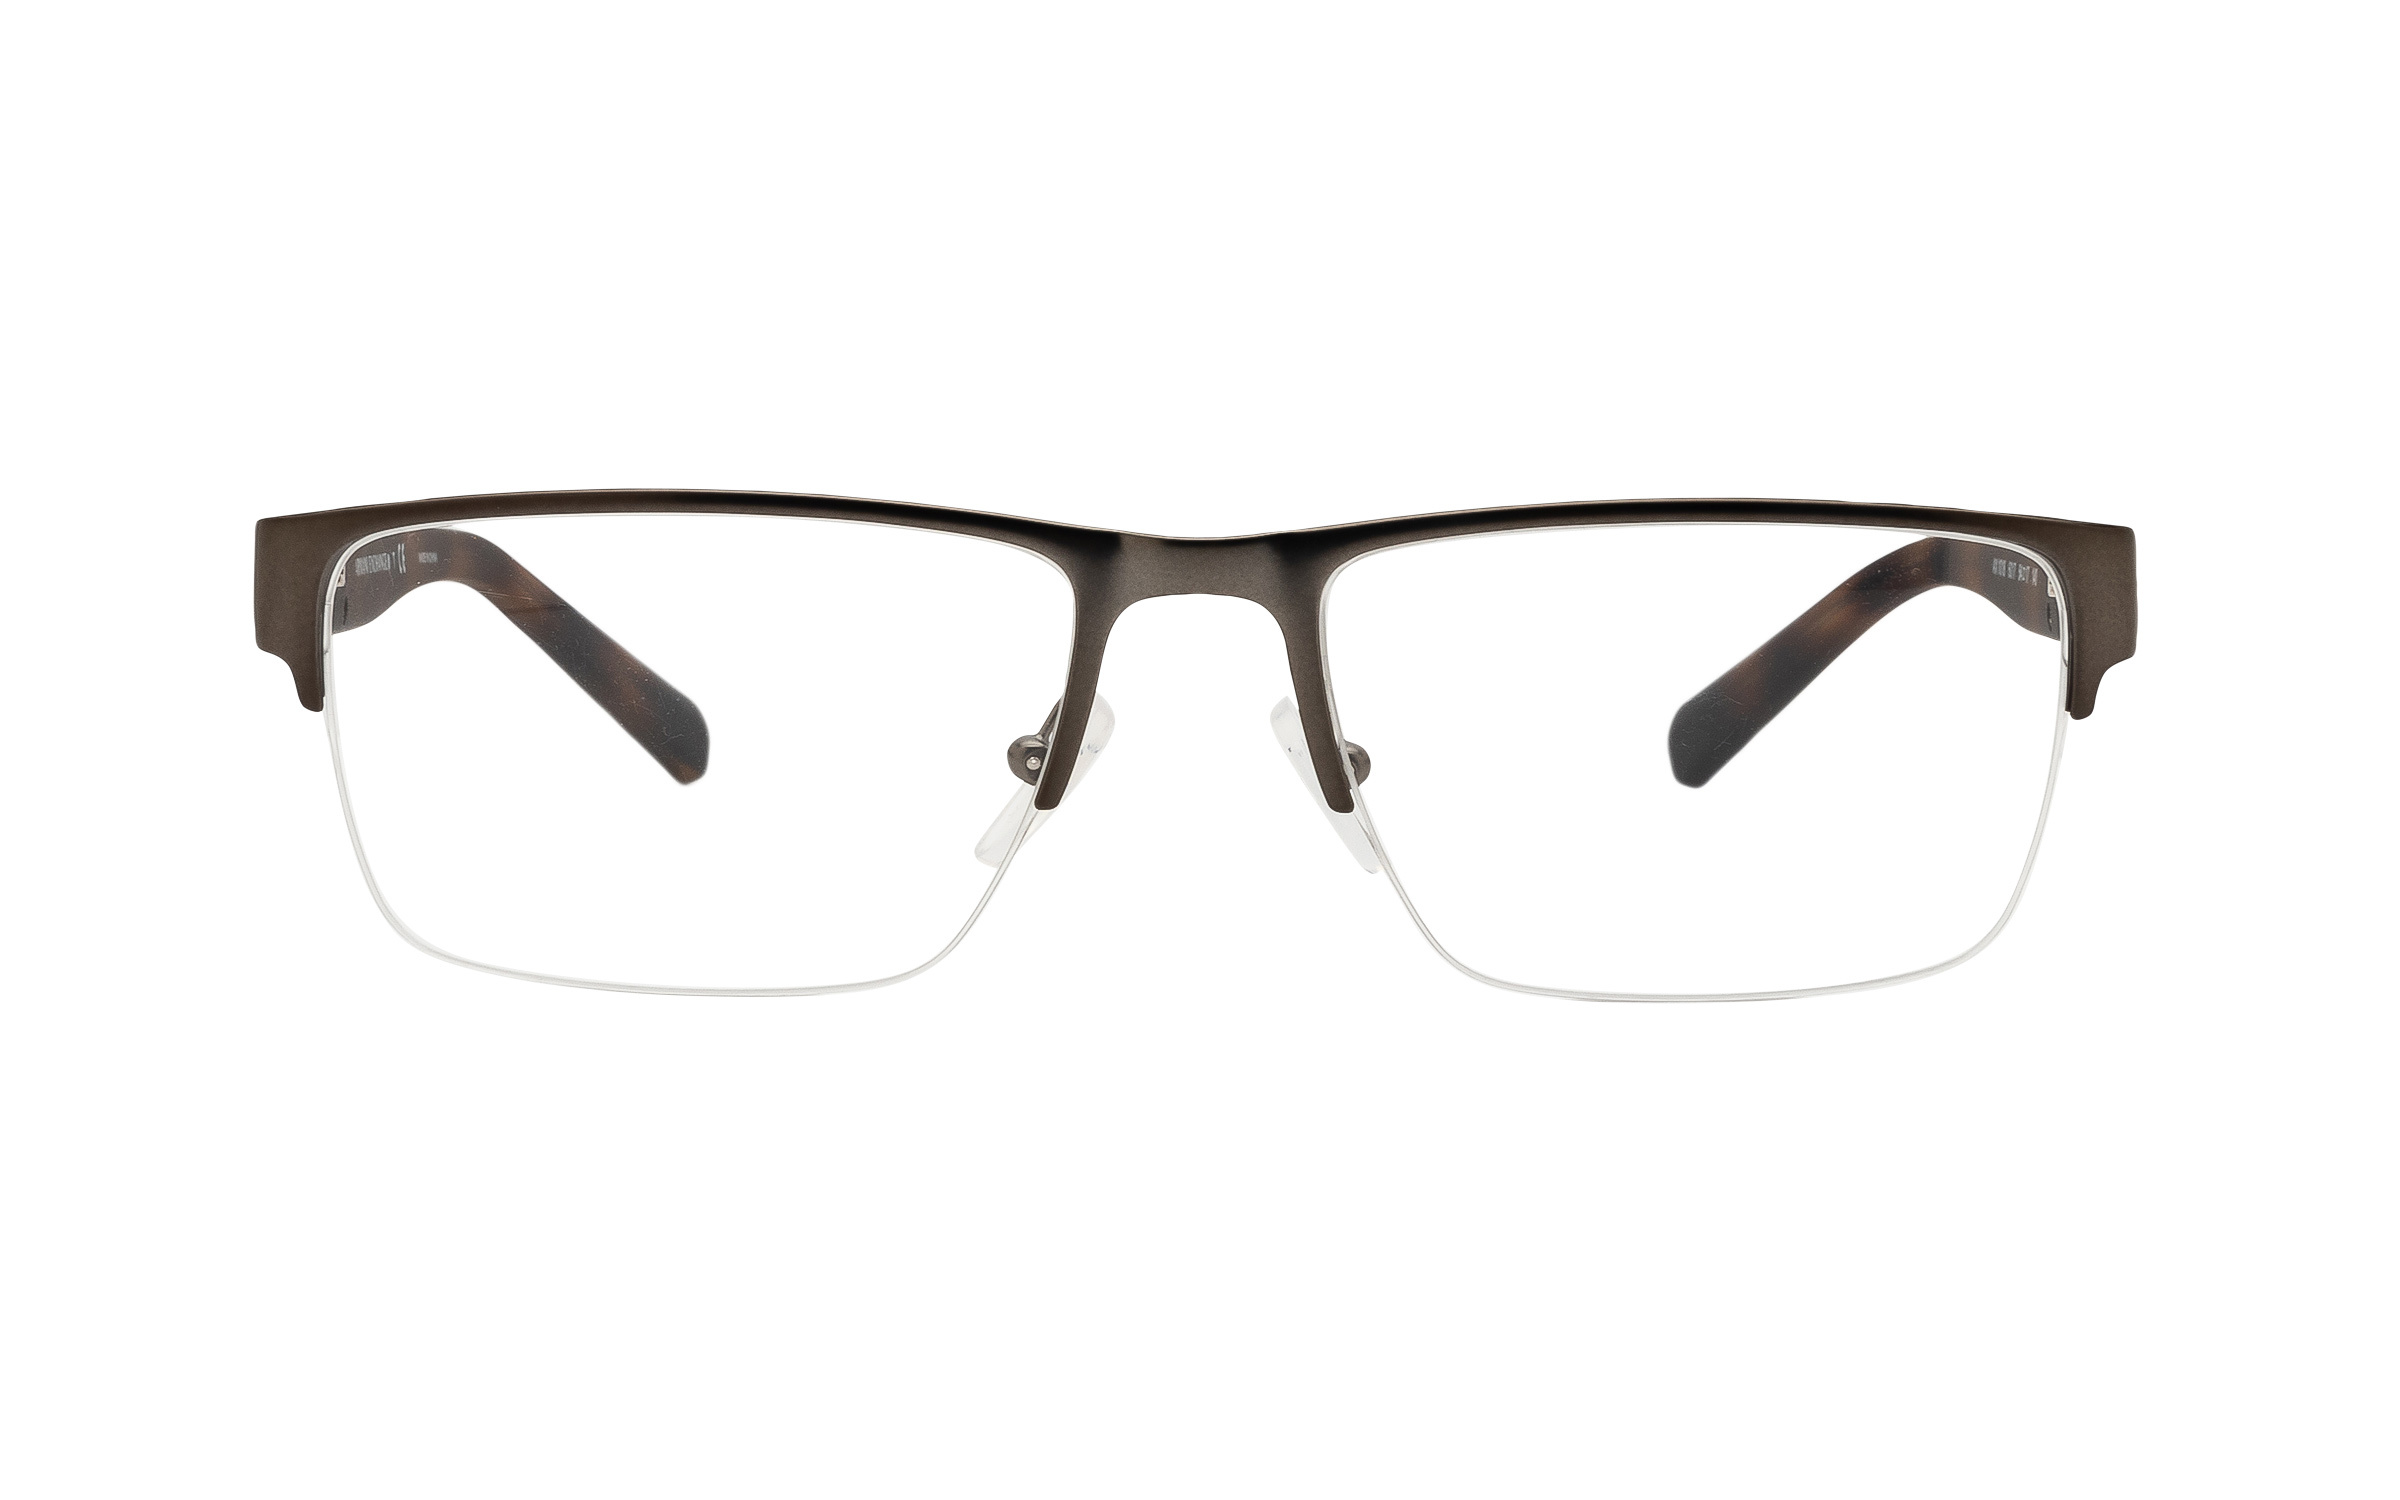 http://www.coastal.com/ - Armani Exchange AX1018 6017 (54) Eyeglasses and Frame in Matte Gunmetal Grey – Online Coastal